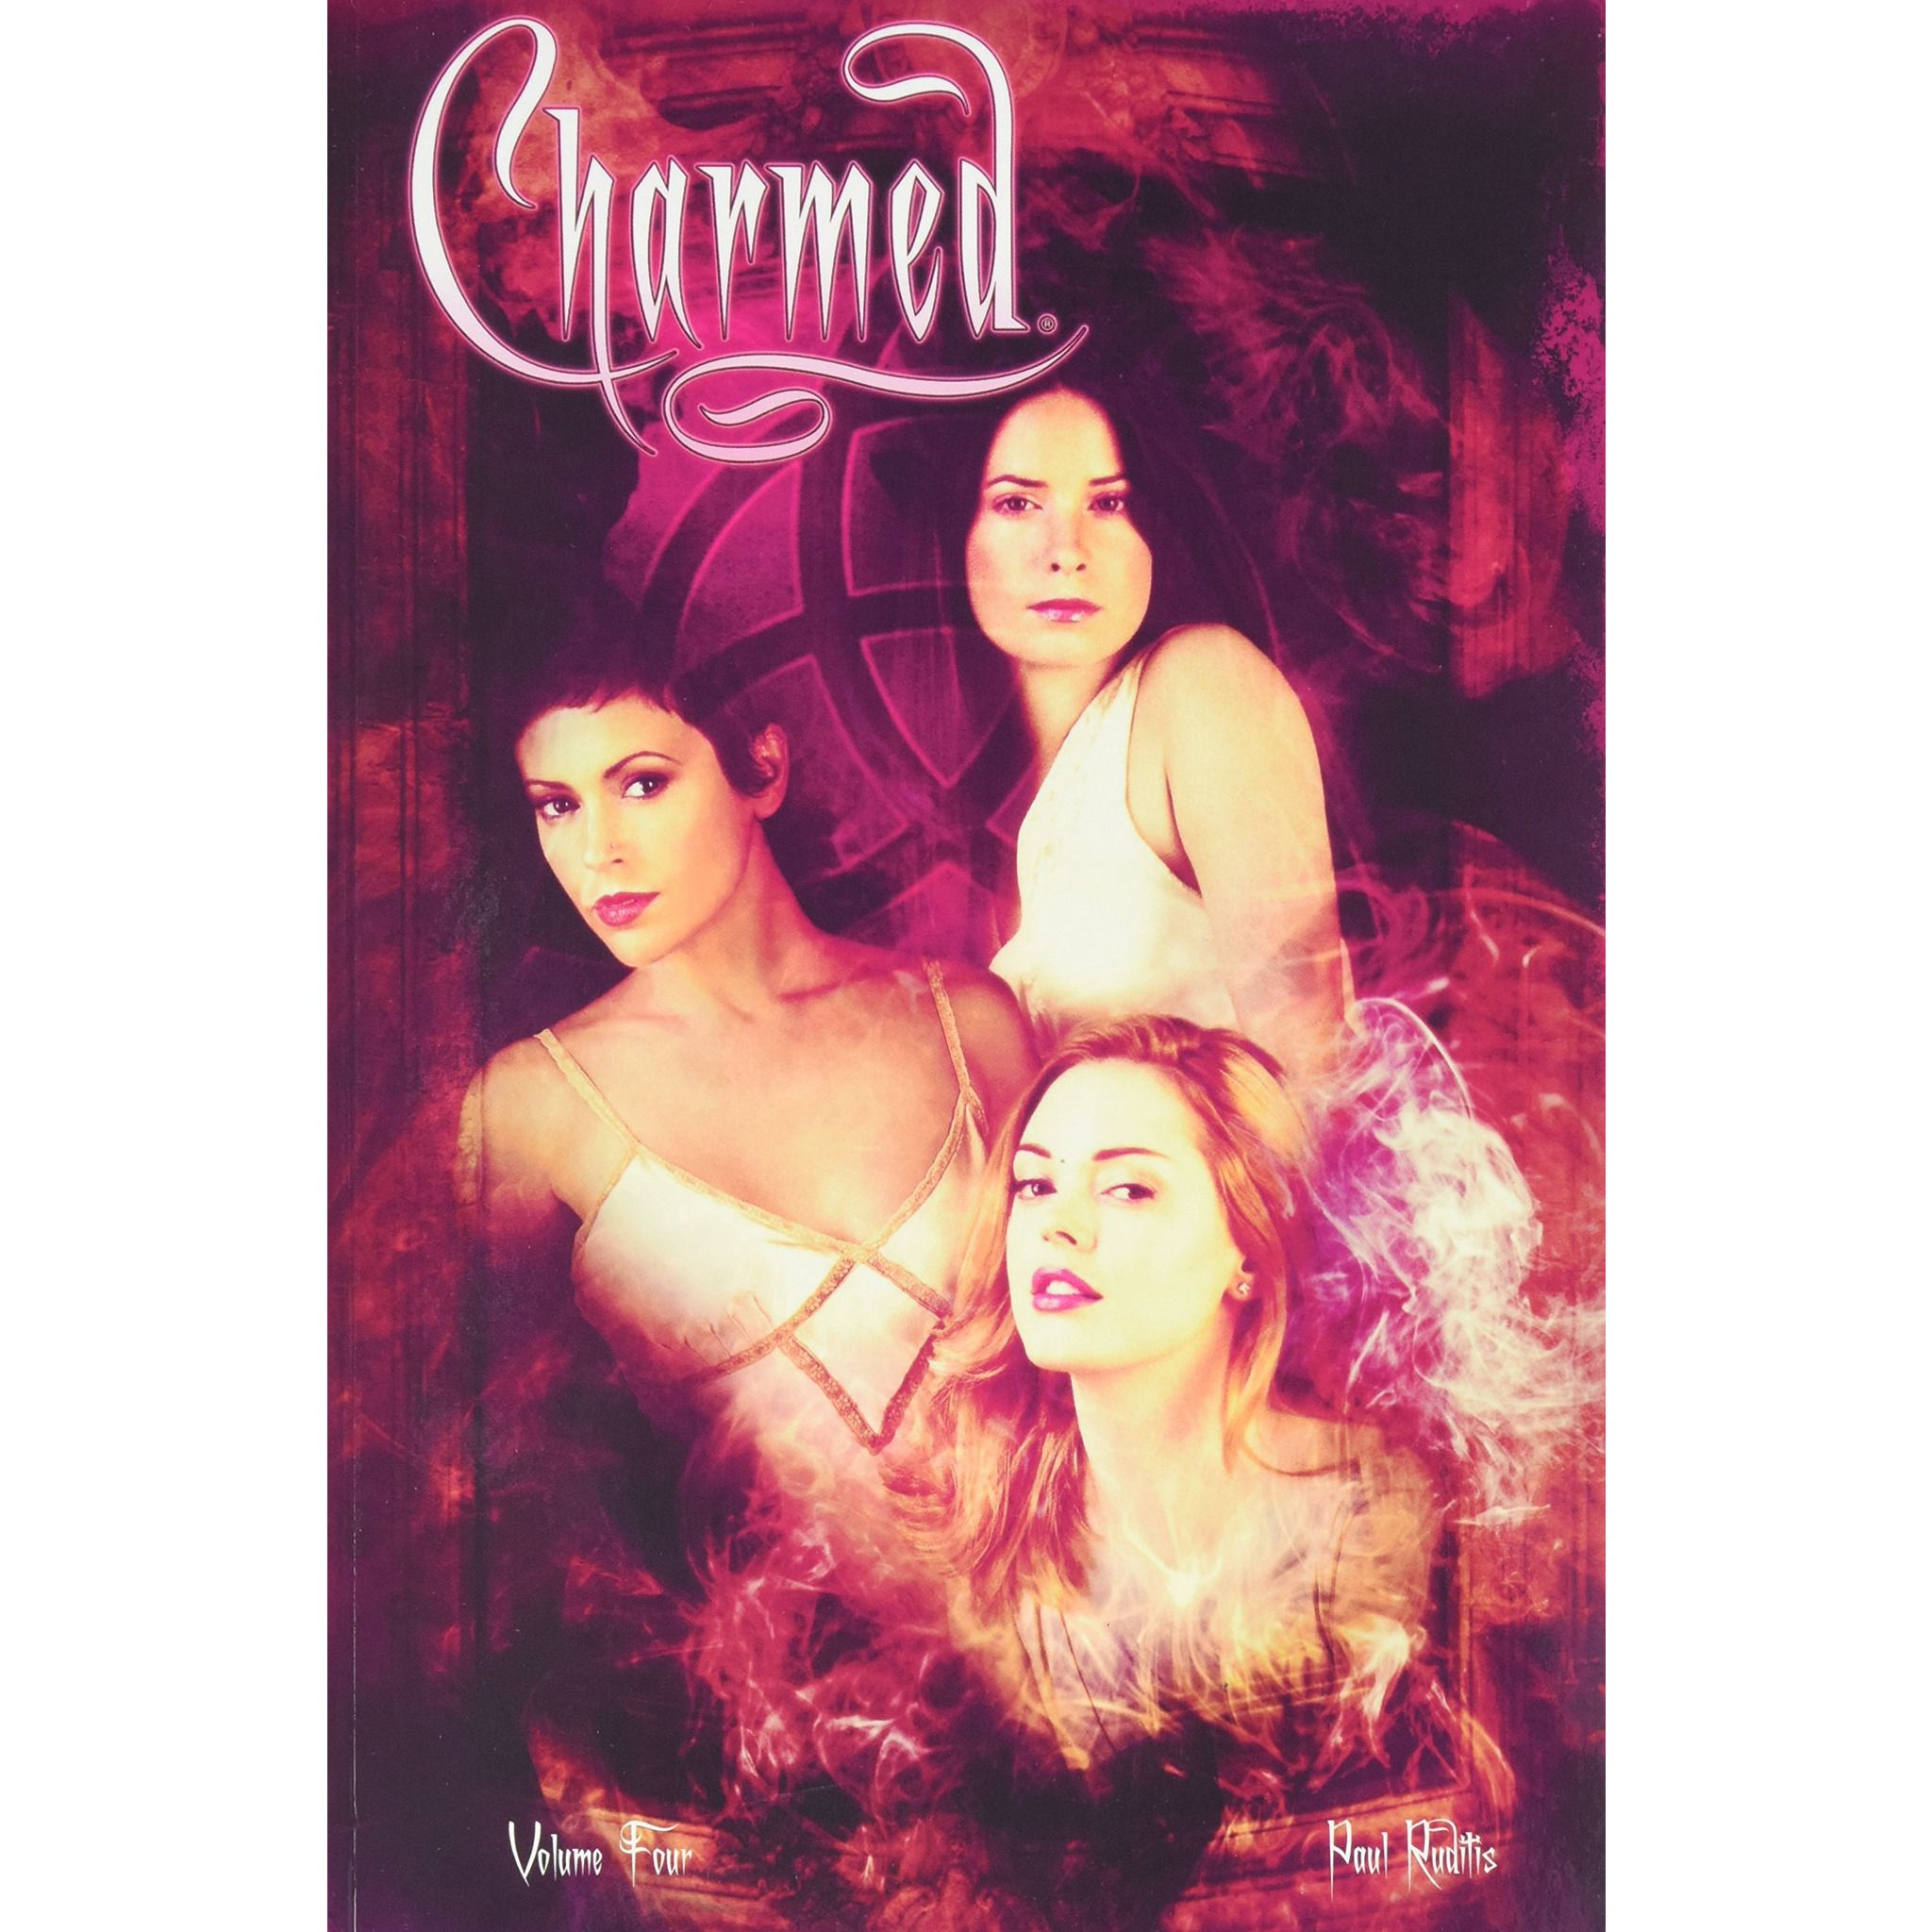 Charmed TP VOL 04 Uncanny!